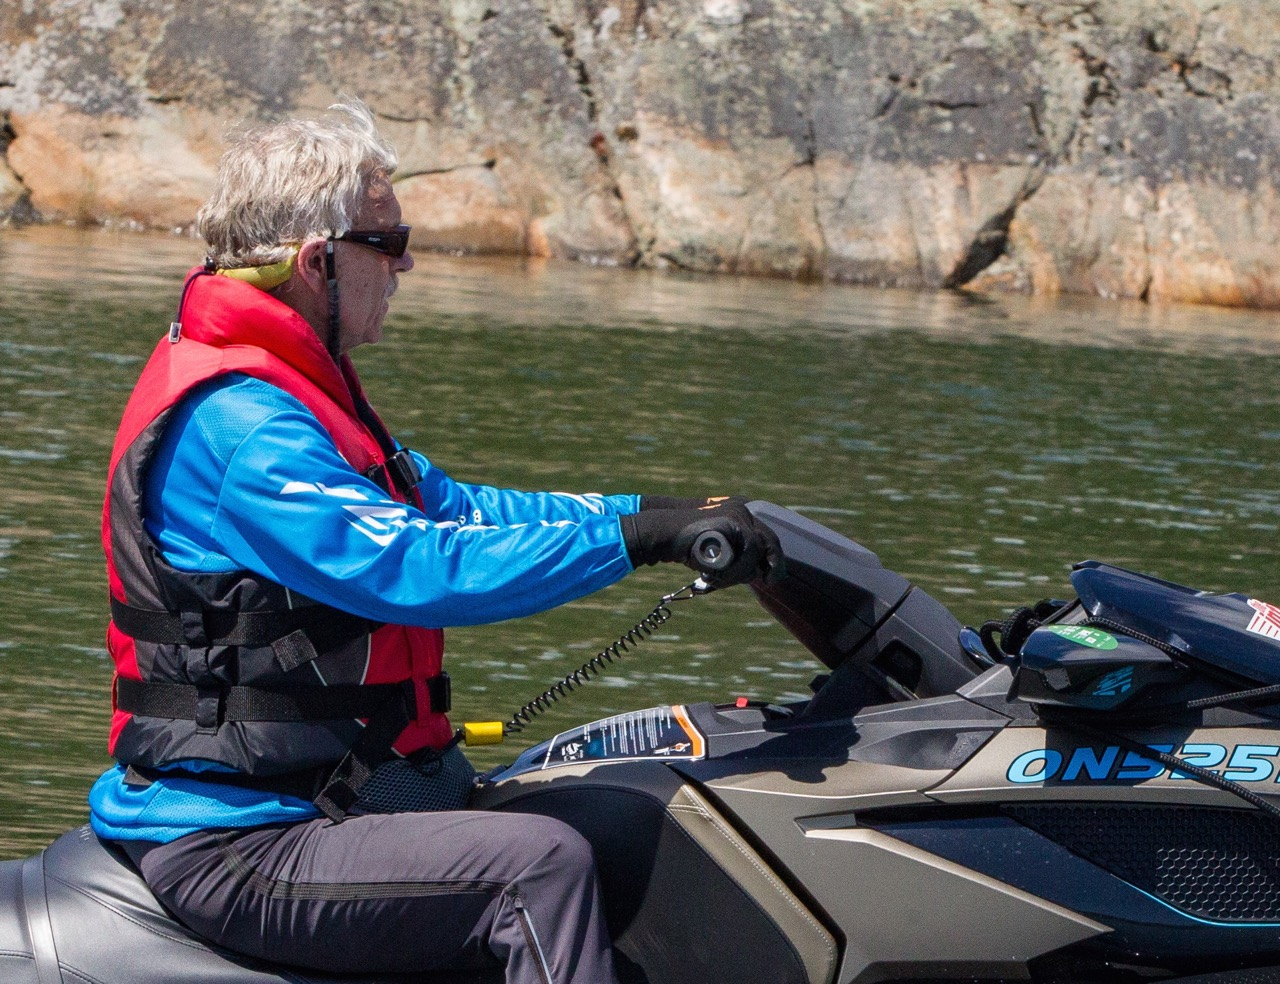 Make this best jet ski riding glove part of your PWC riding gear